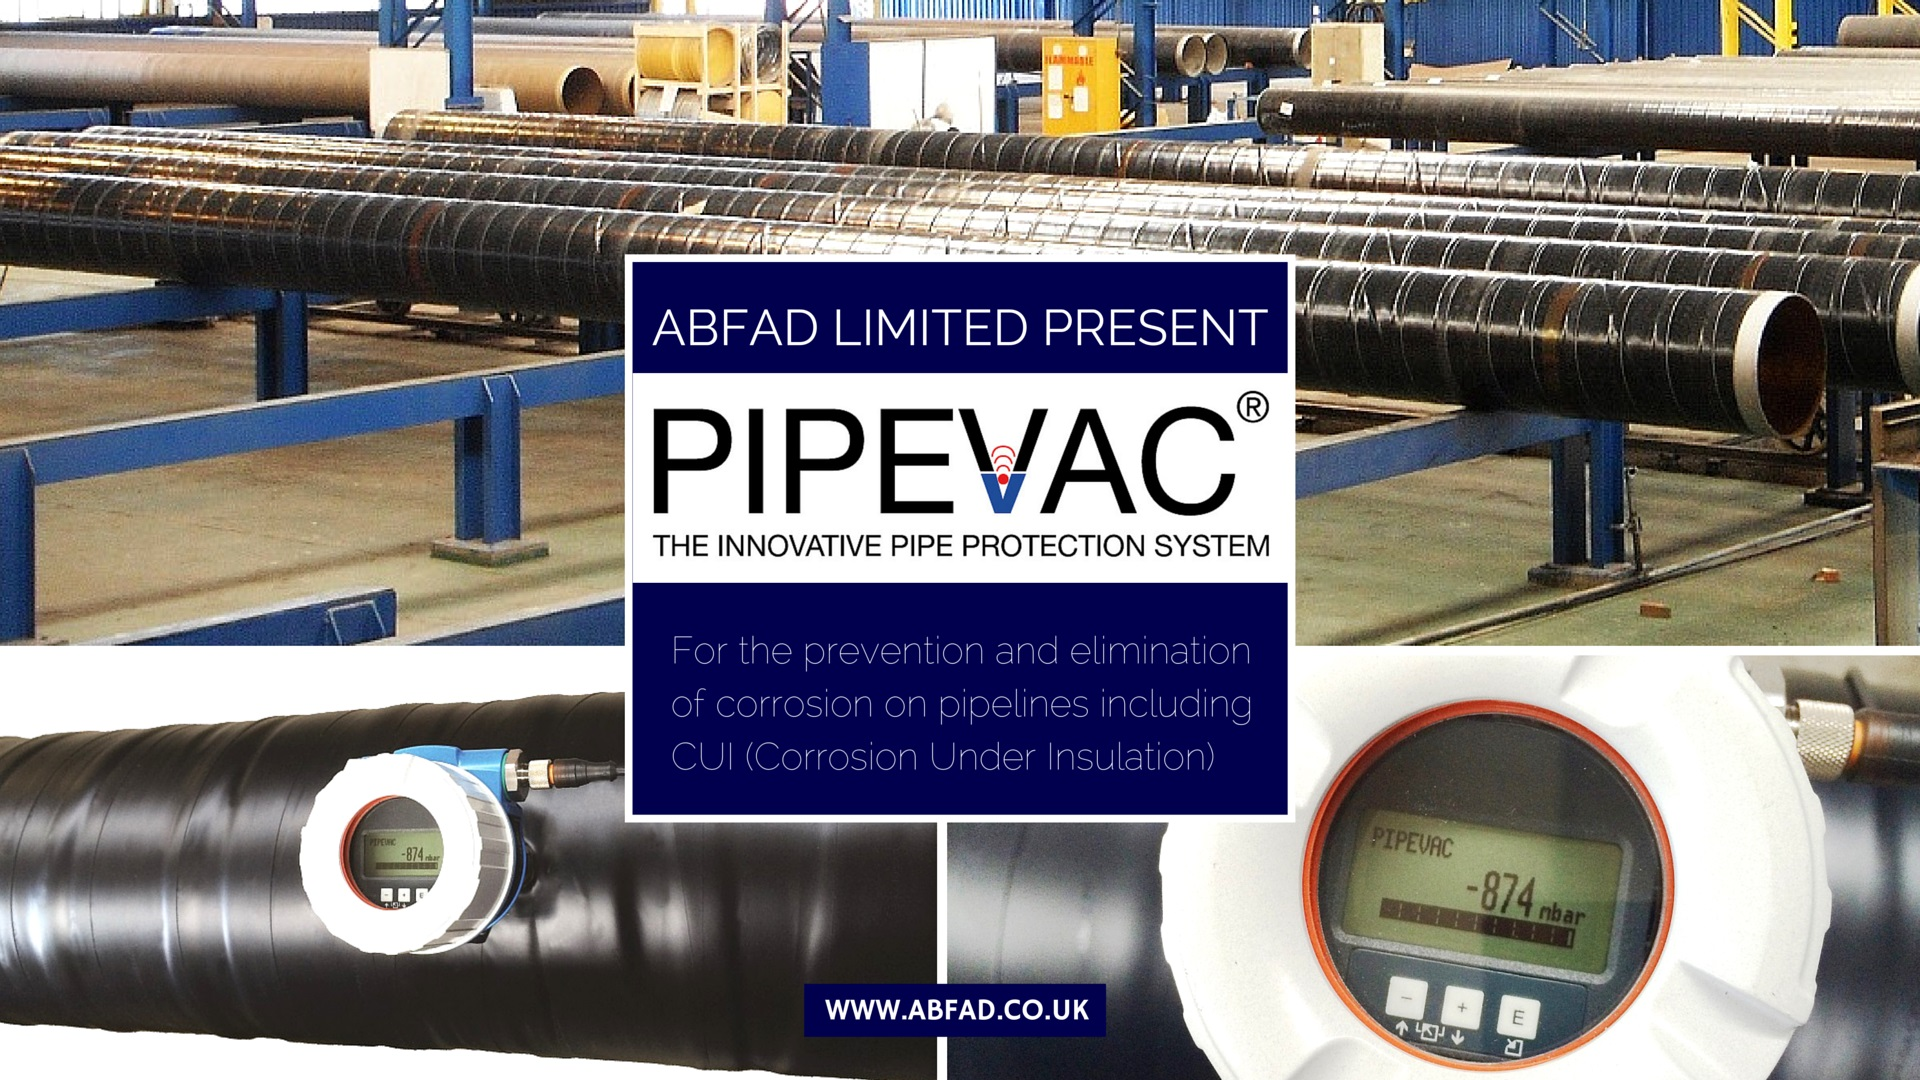 Pipevac promo download